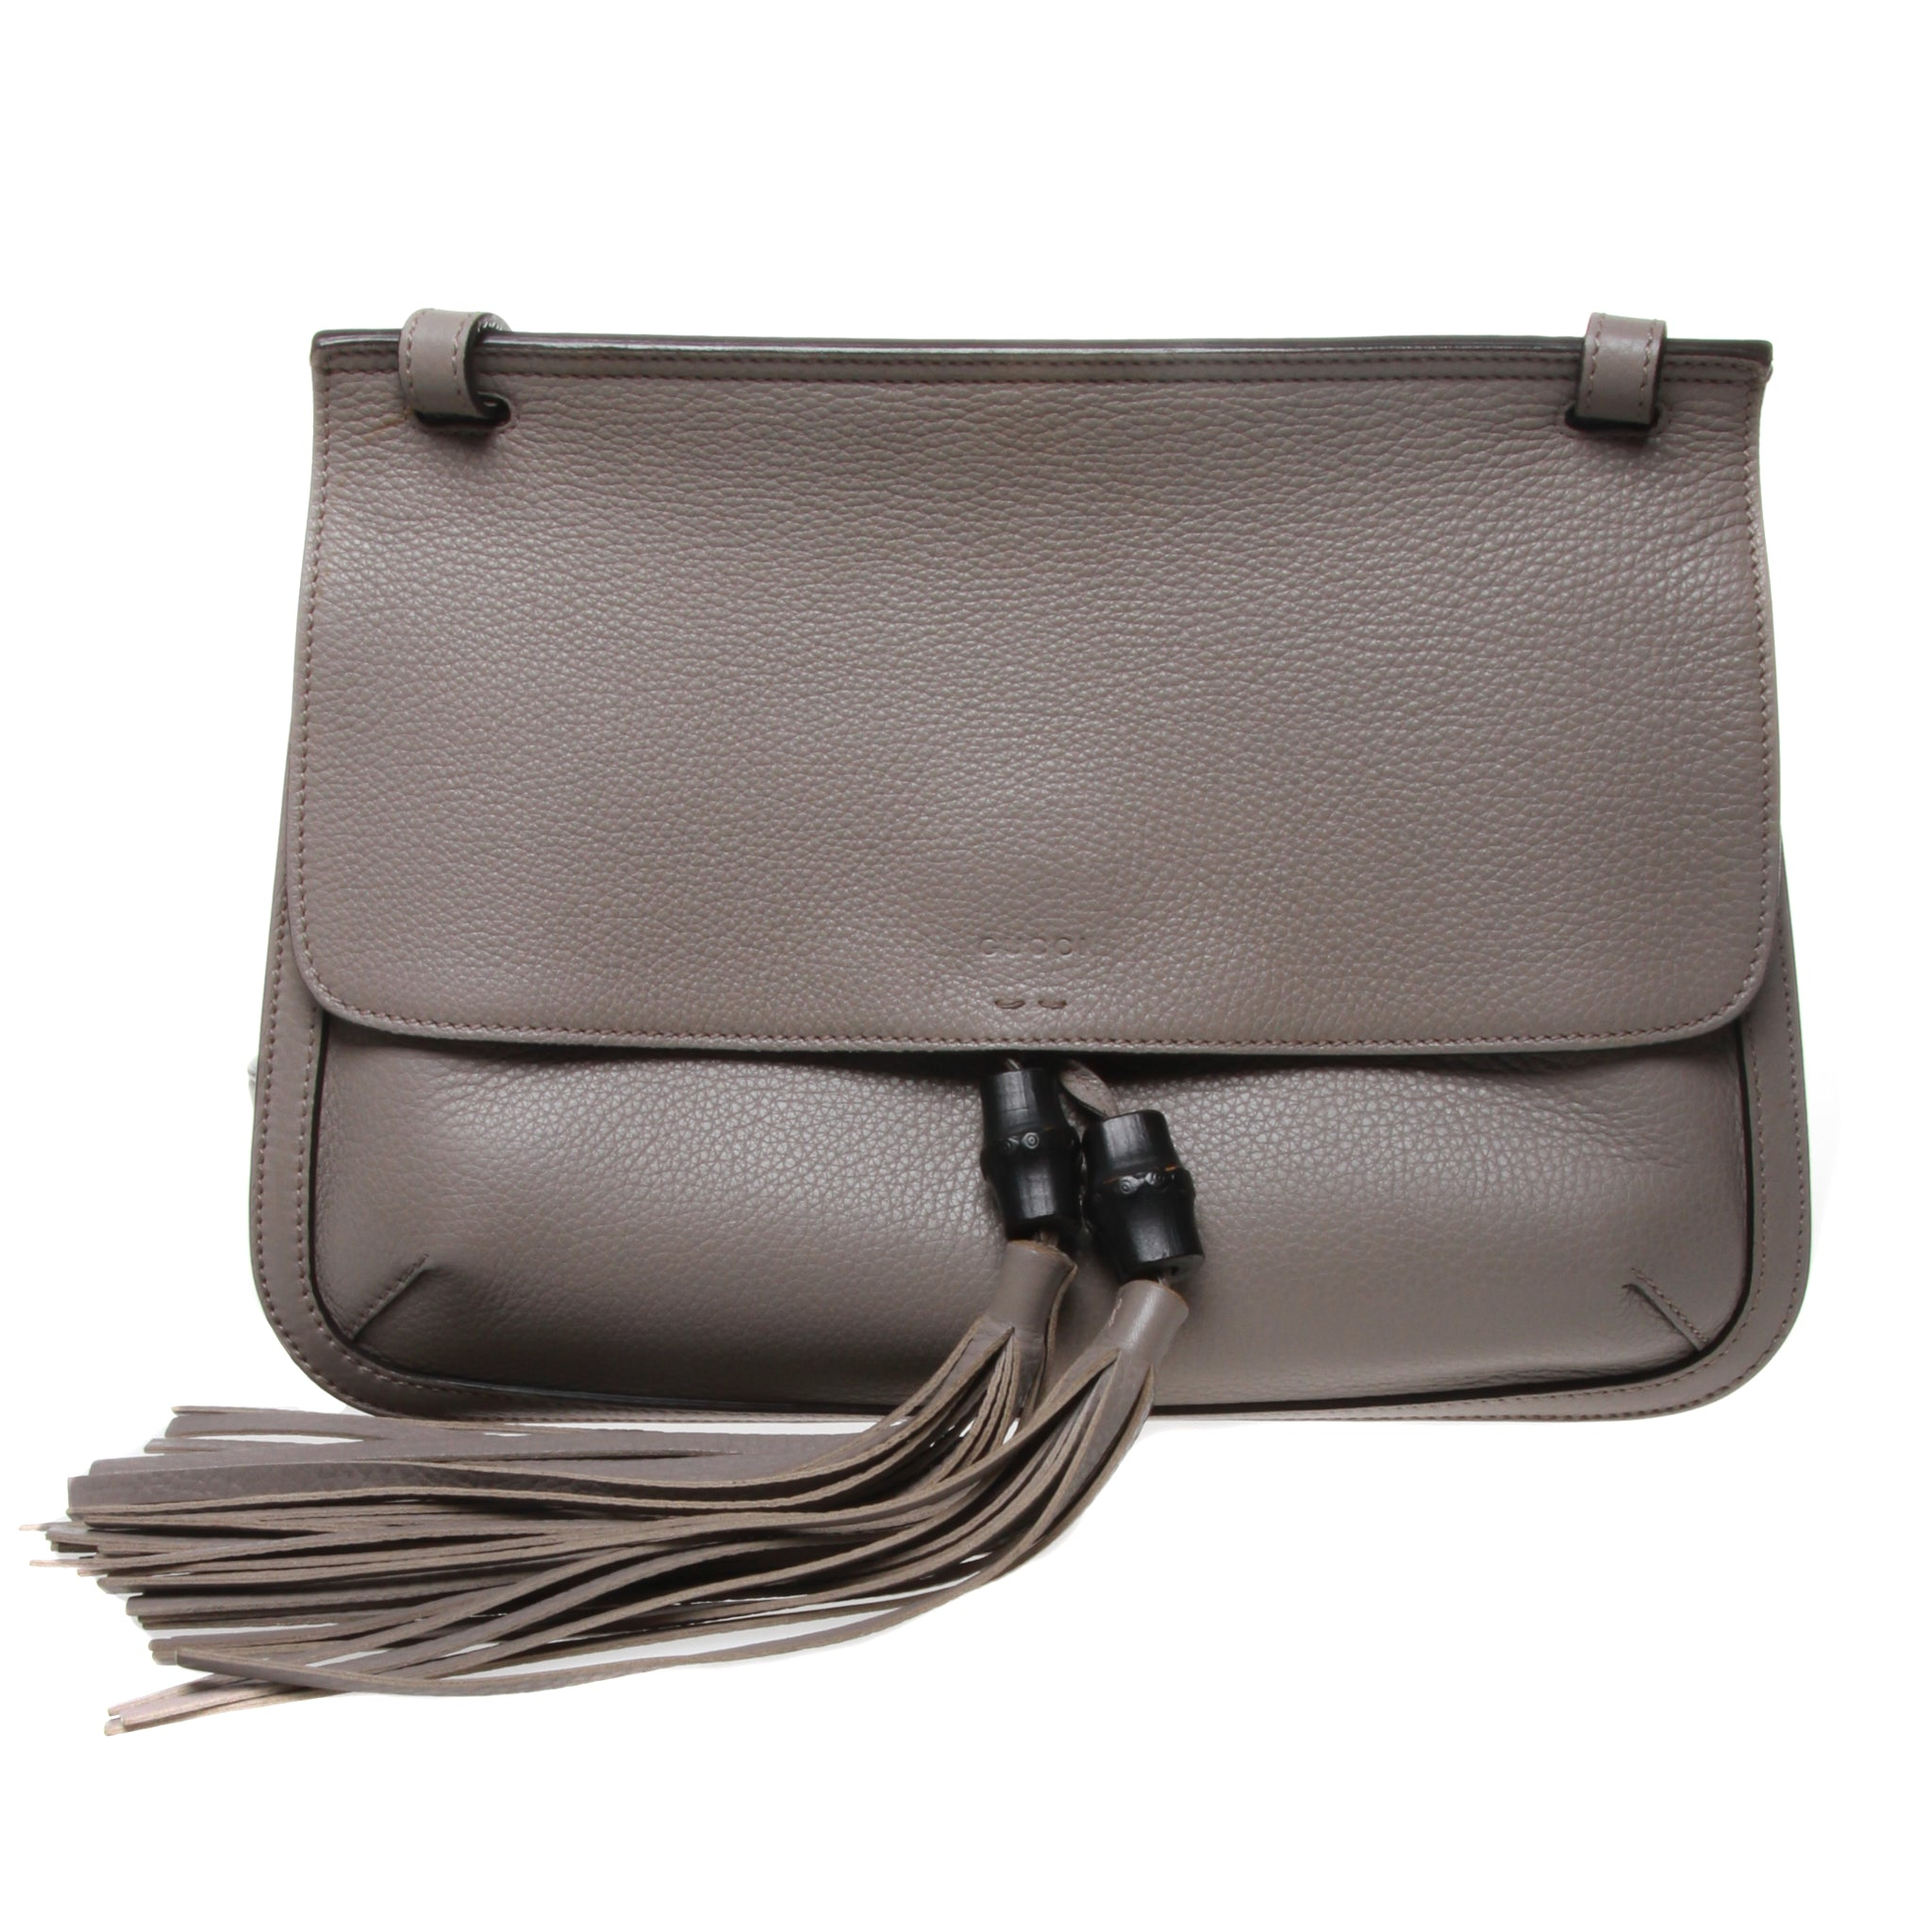 1829043f274 Pre-owned Gucci Bamboo Daily Leather Flap Shoulder Bag – Madam ...